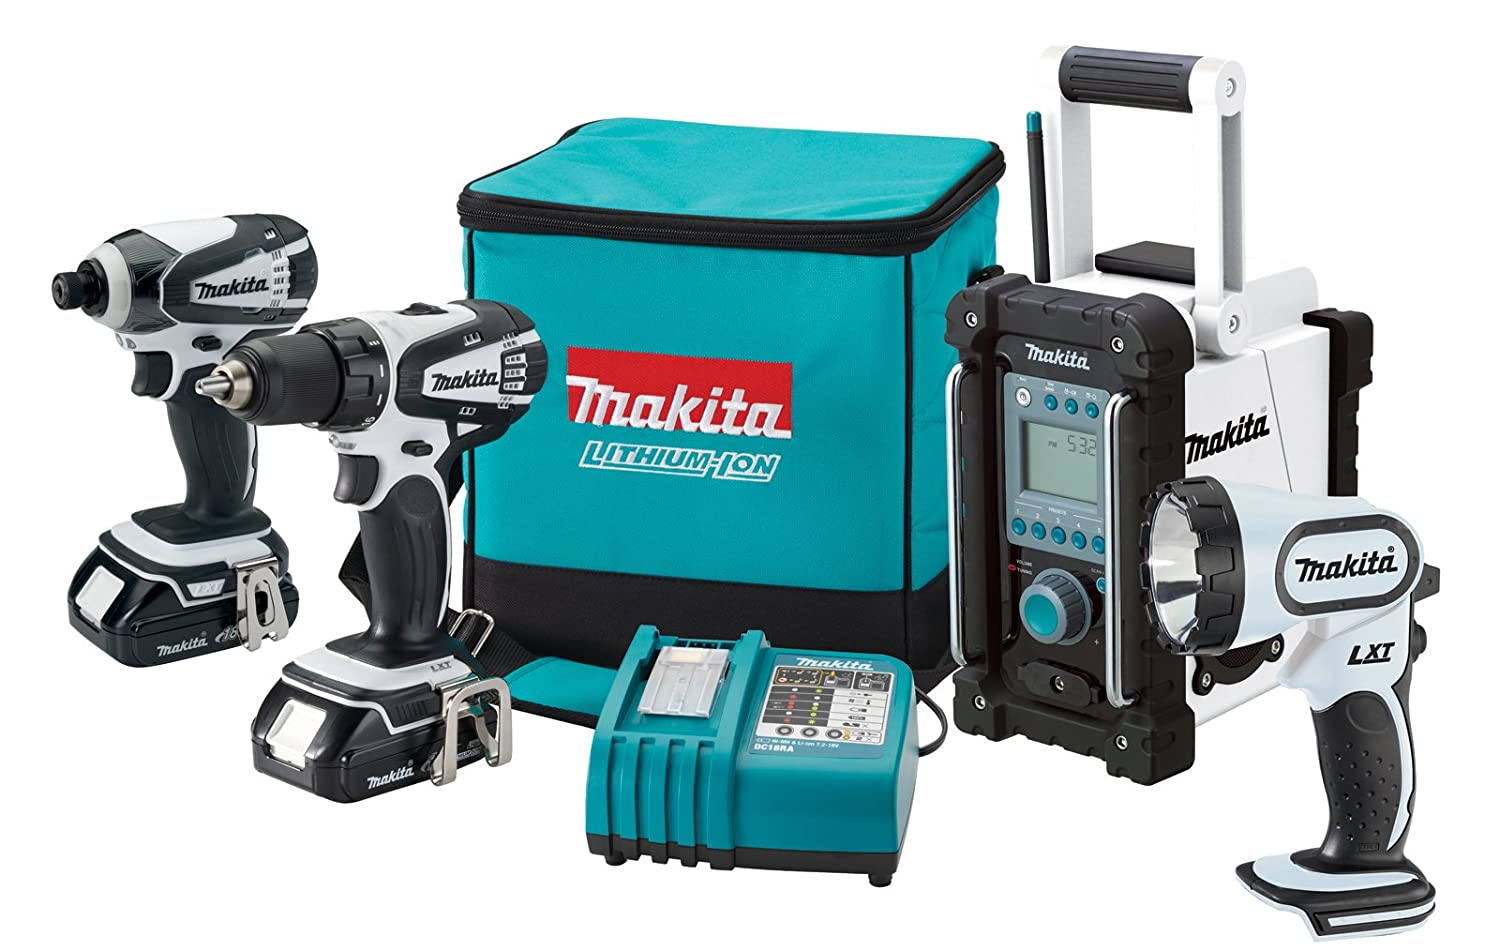 Makita LCT400W 18-Volt Compact Lithium-Ion Cordless 4-Piece Combo Kit $327.00